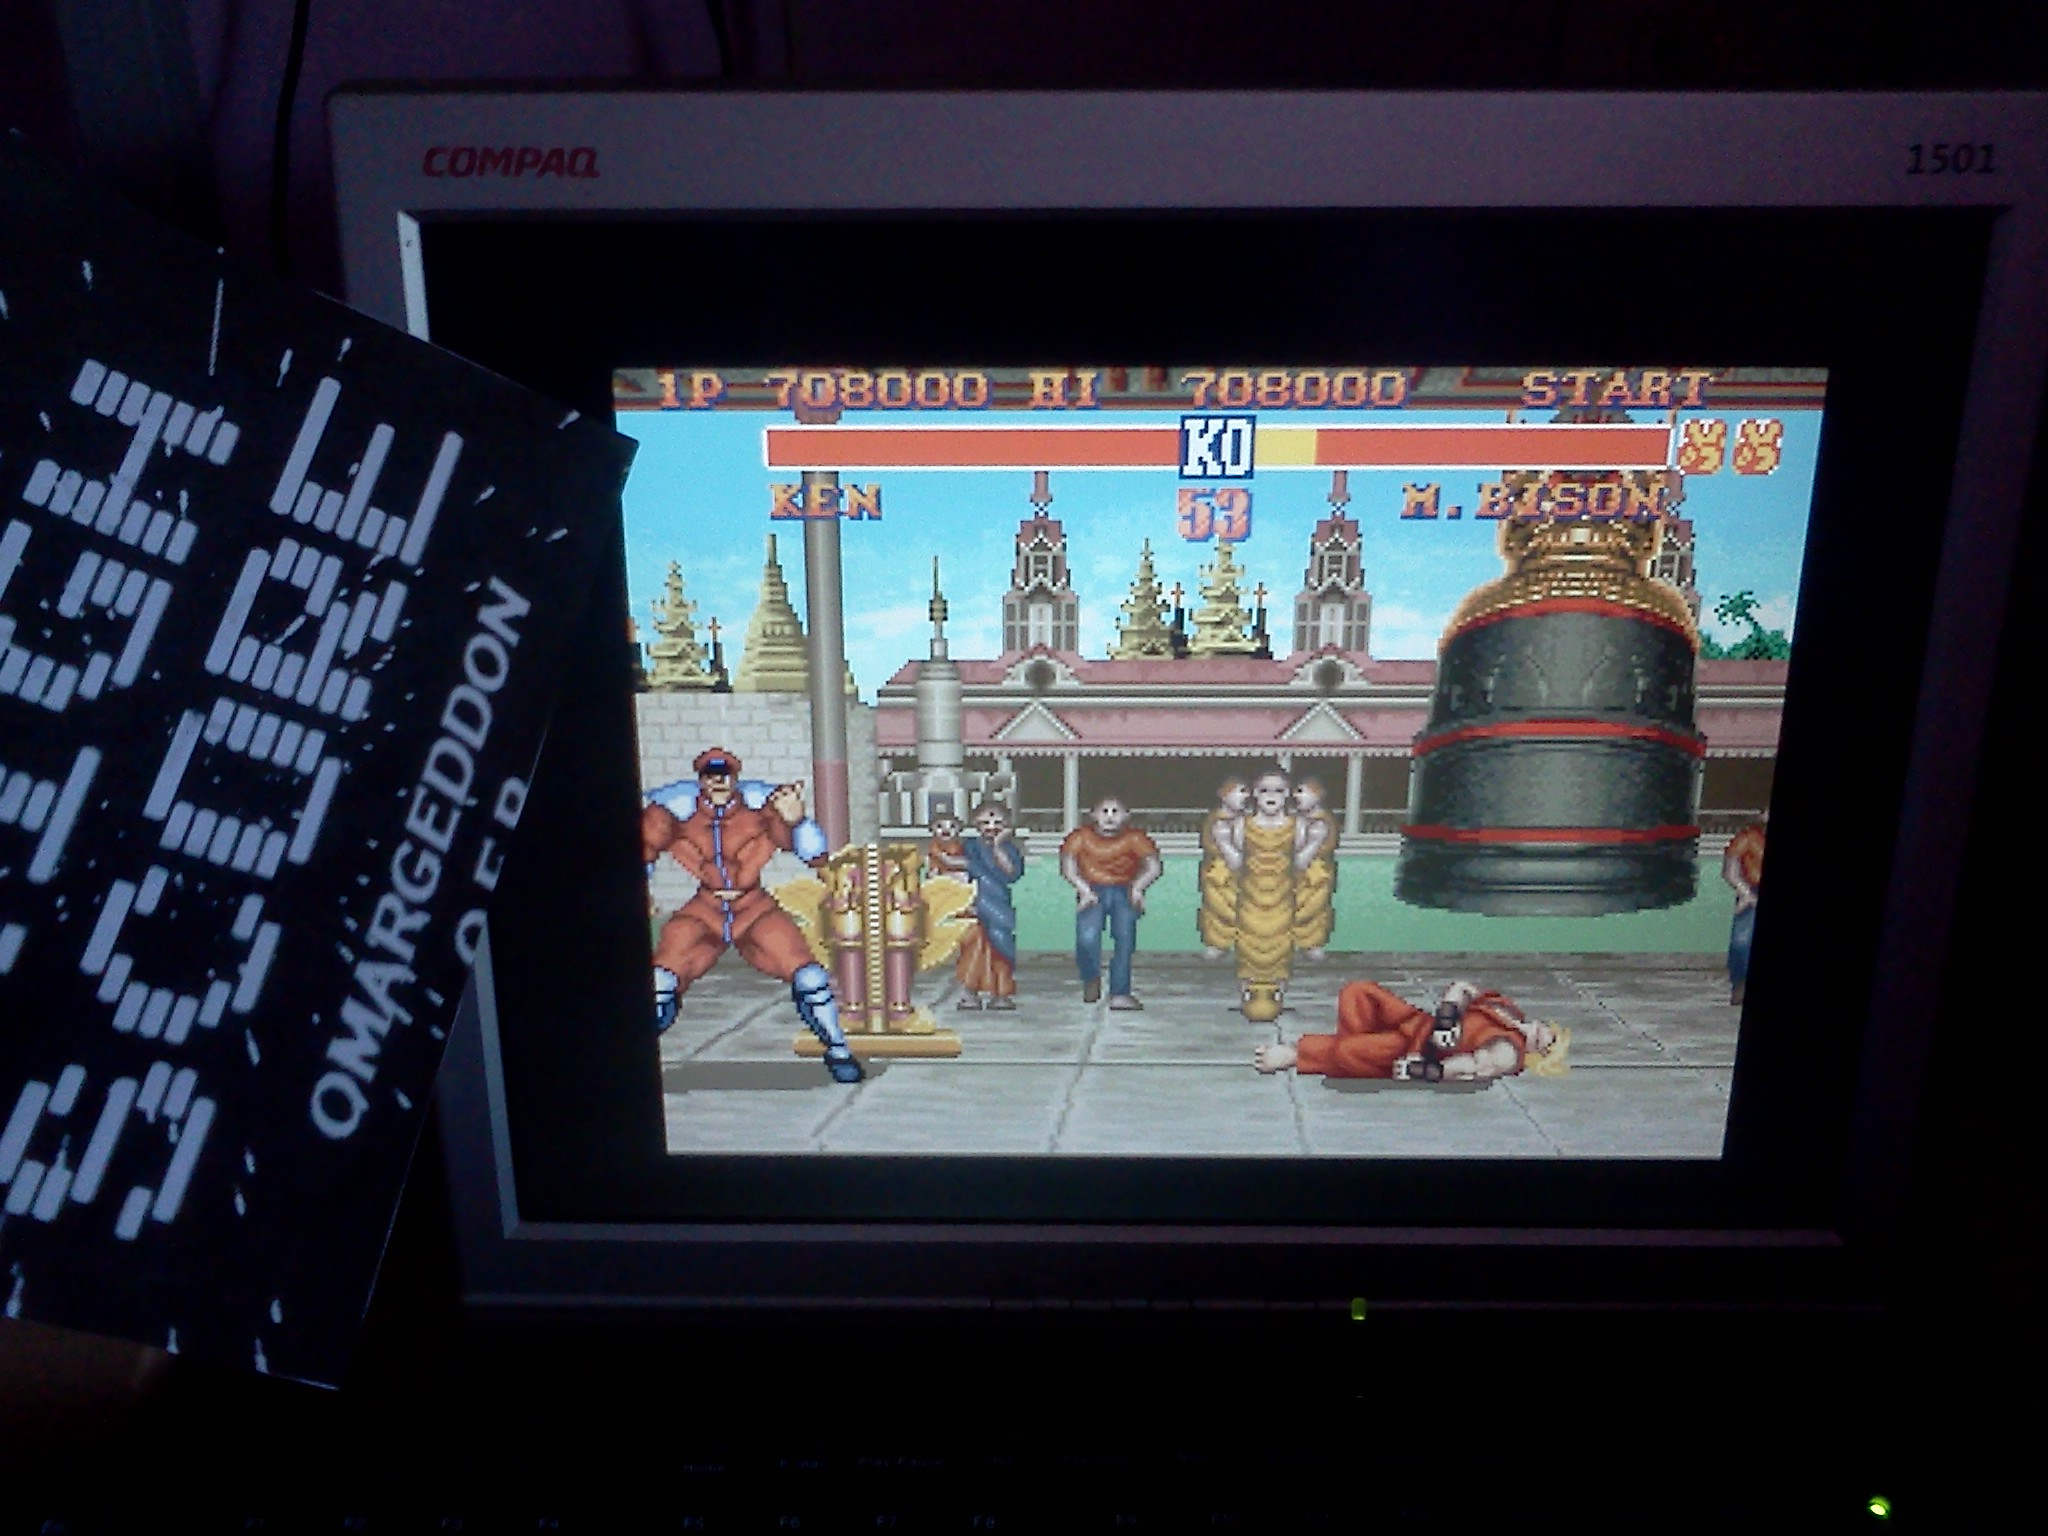 omargeddon: Street Fighter II: The World Warrior (SNES/Super Famicom Emulated) 708,000 points on 2016-08-21 12:25:31